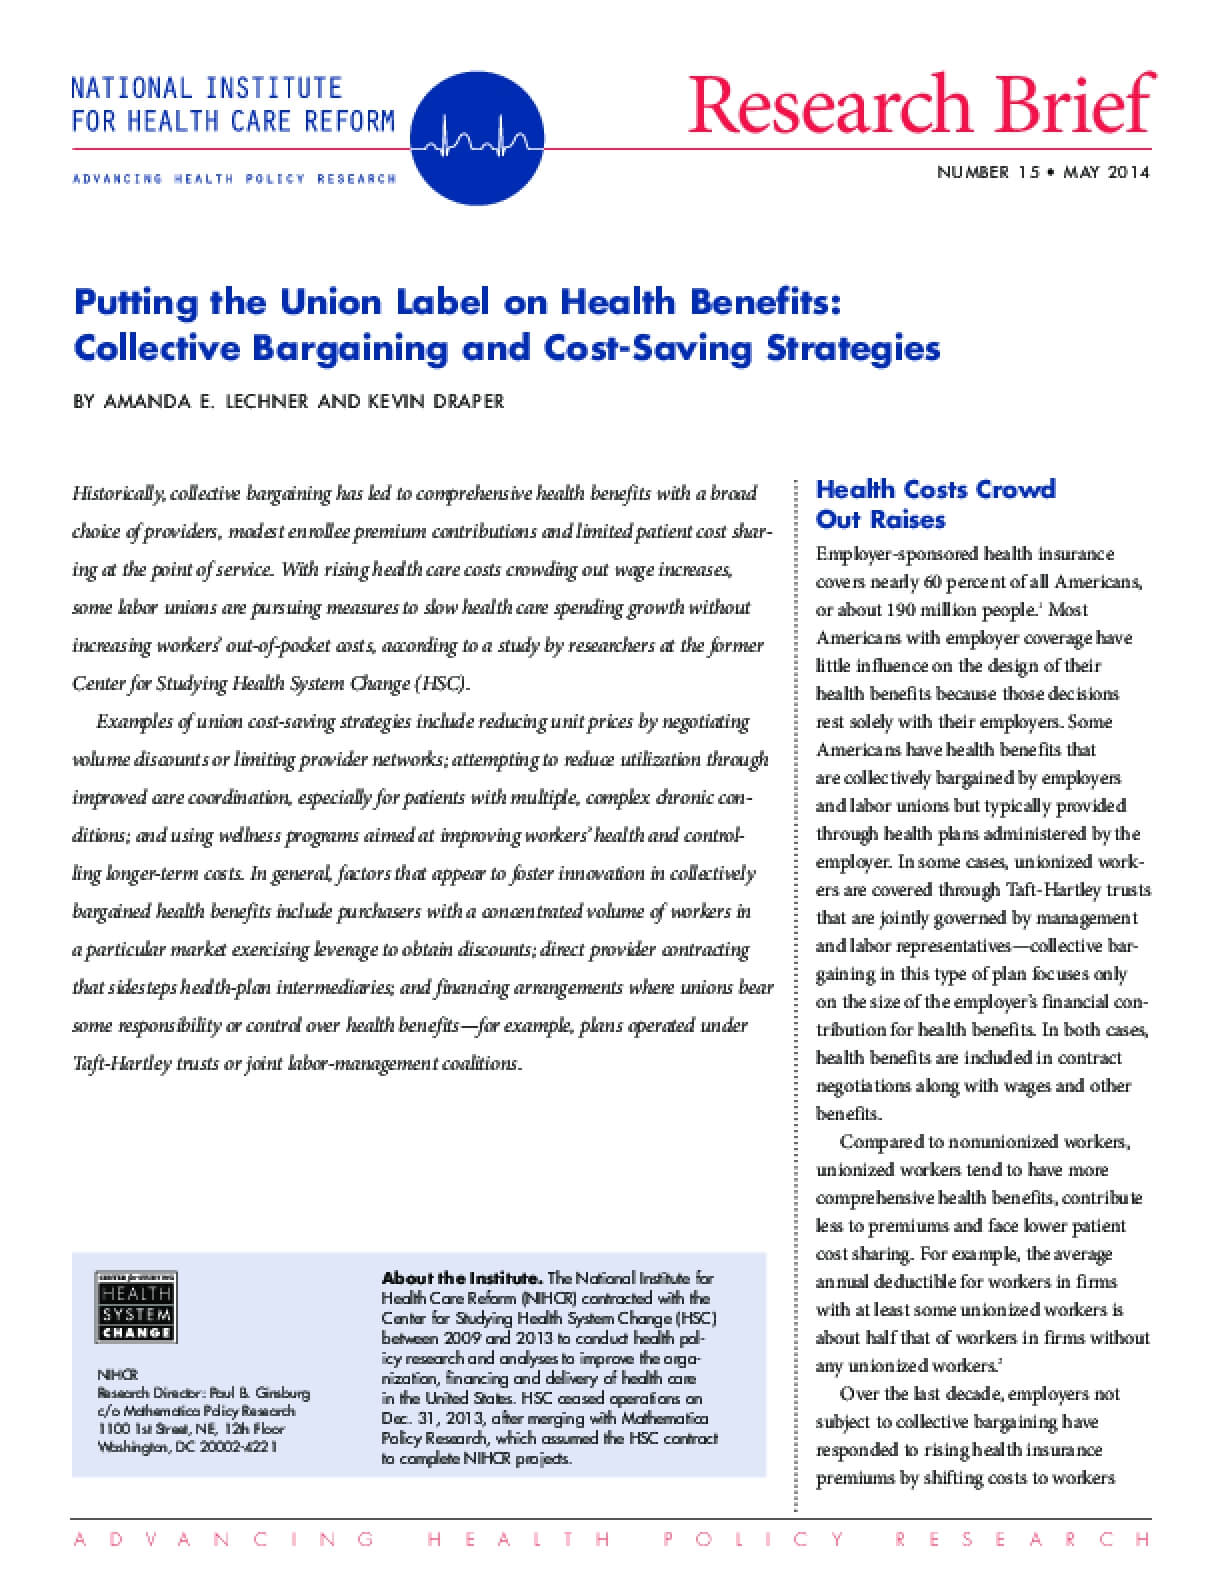 Putting the Union Label on Health Benefits: Collective Bargaining and Cost-Saving Strategies